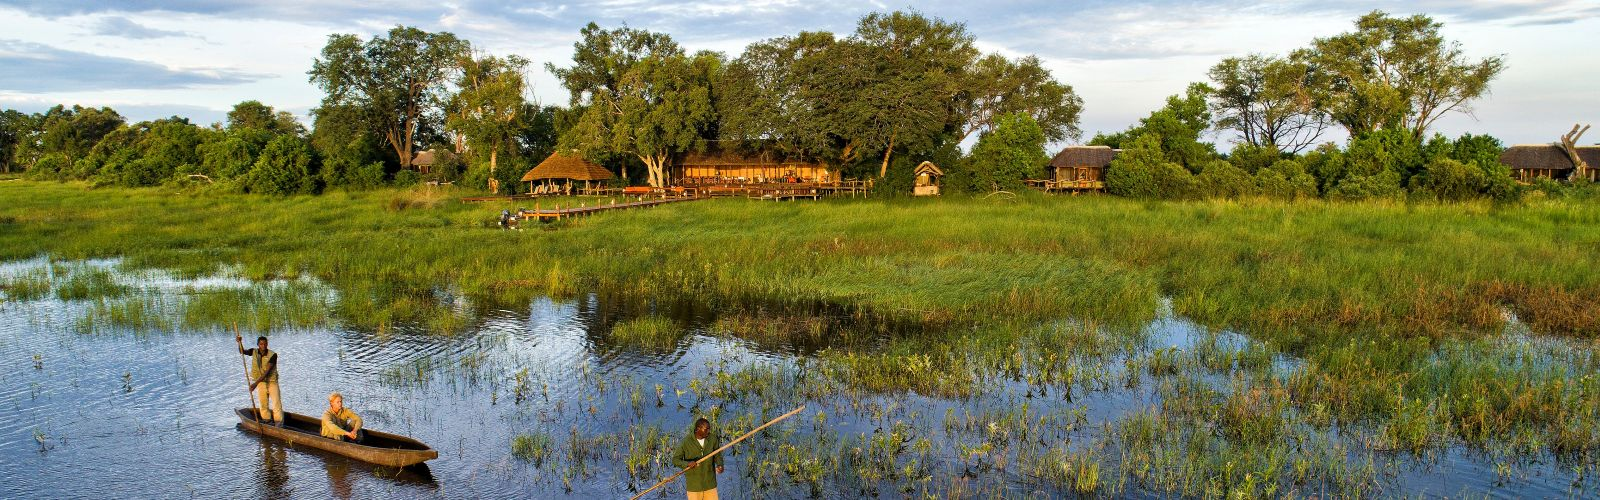 Safari\'s in Botswana